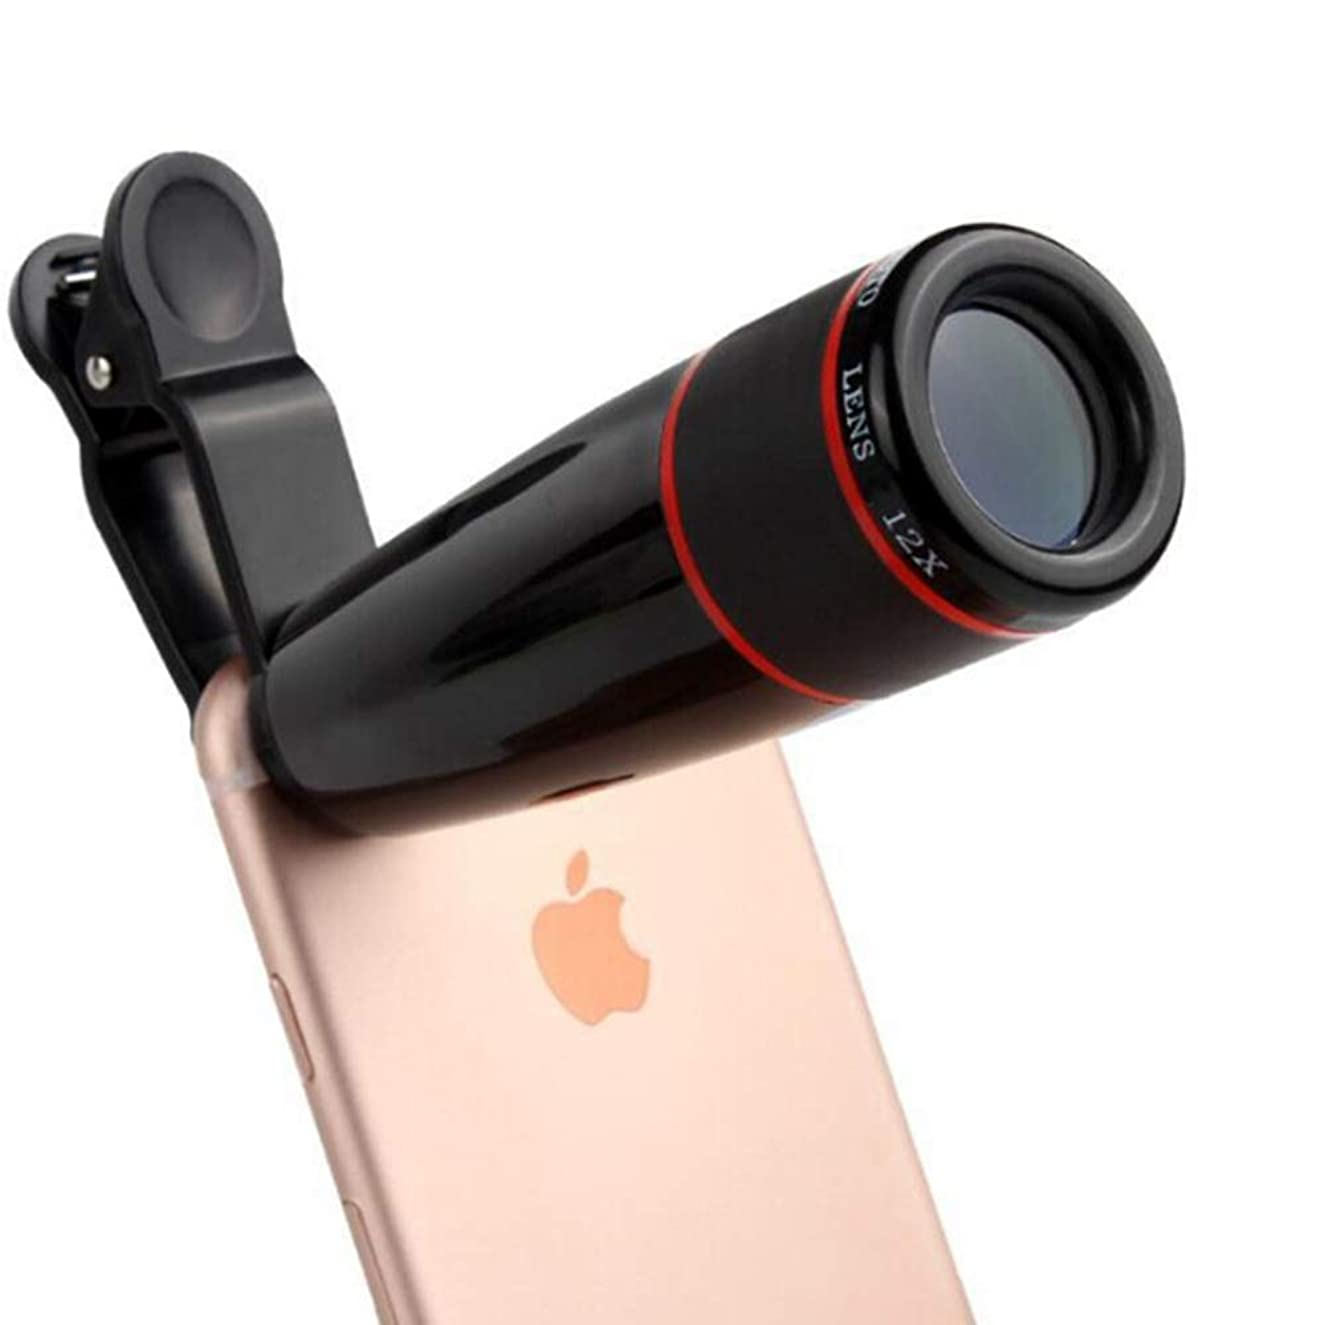 Cell Phone Camera Lens Kit,5 in 1 Lens Kit-High Power 20X Monocular Telephoto Lens, Wide-Angle, Macro, fisheye, Eye mask, Telescope Mobile Zoom Compatible iPhone Samsung Huawei Android Smartphones